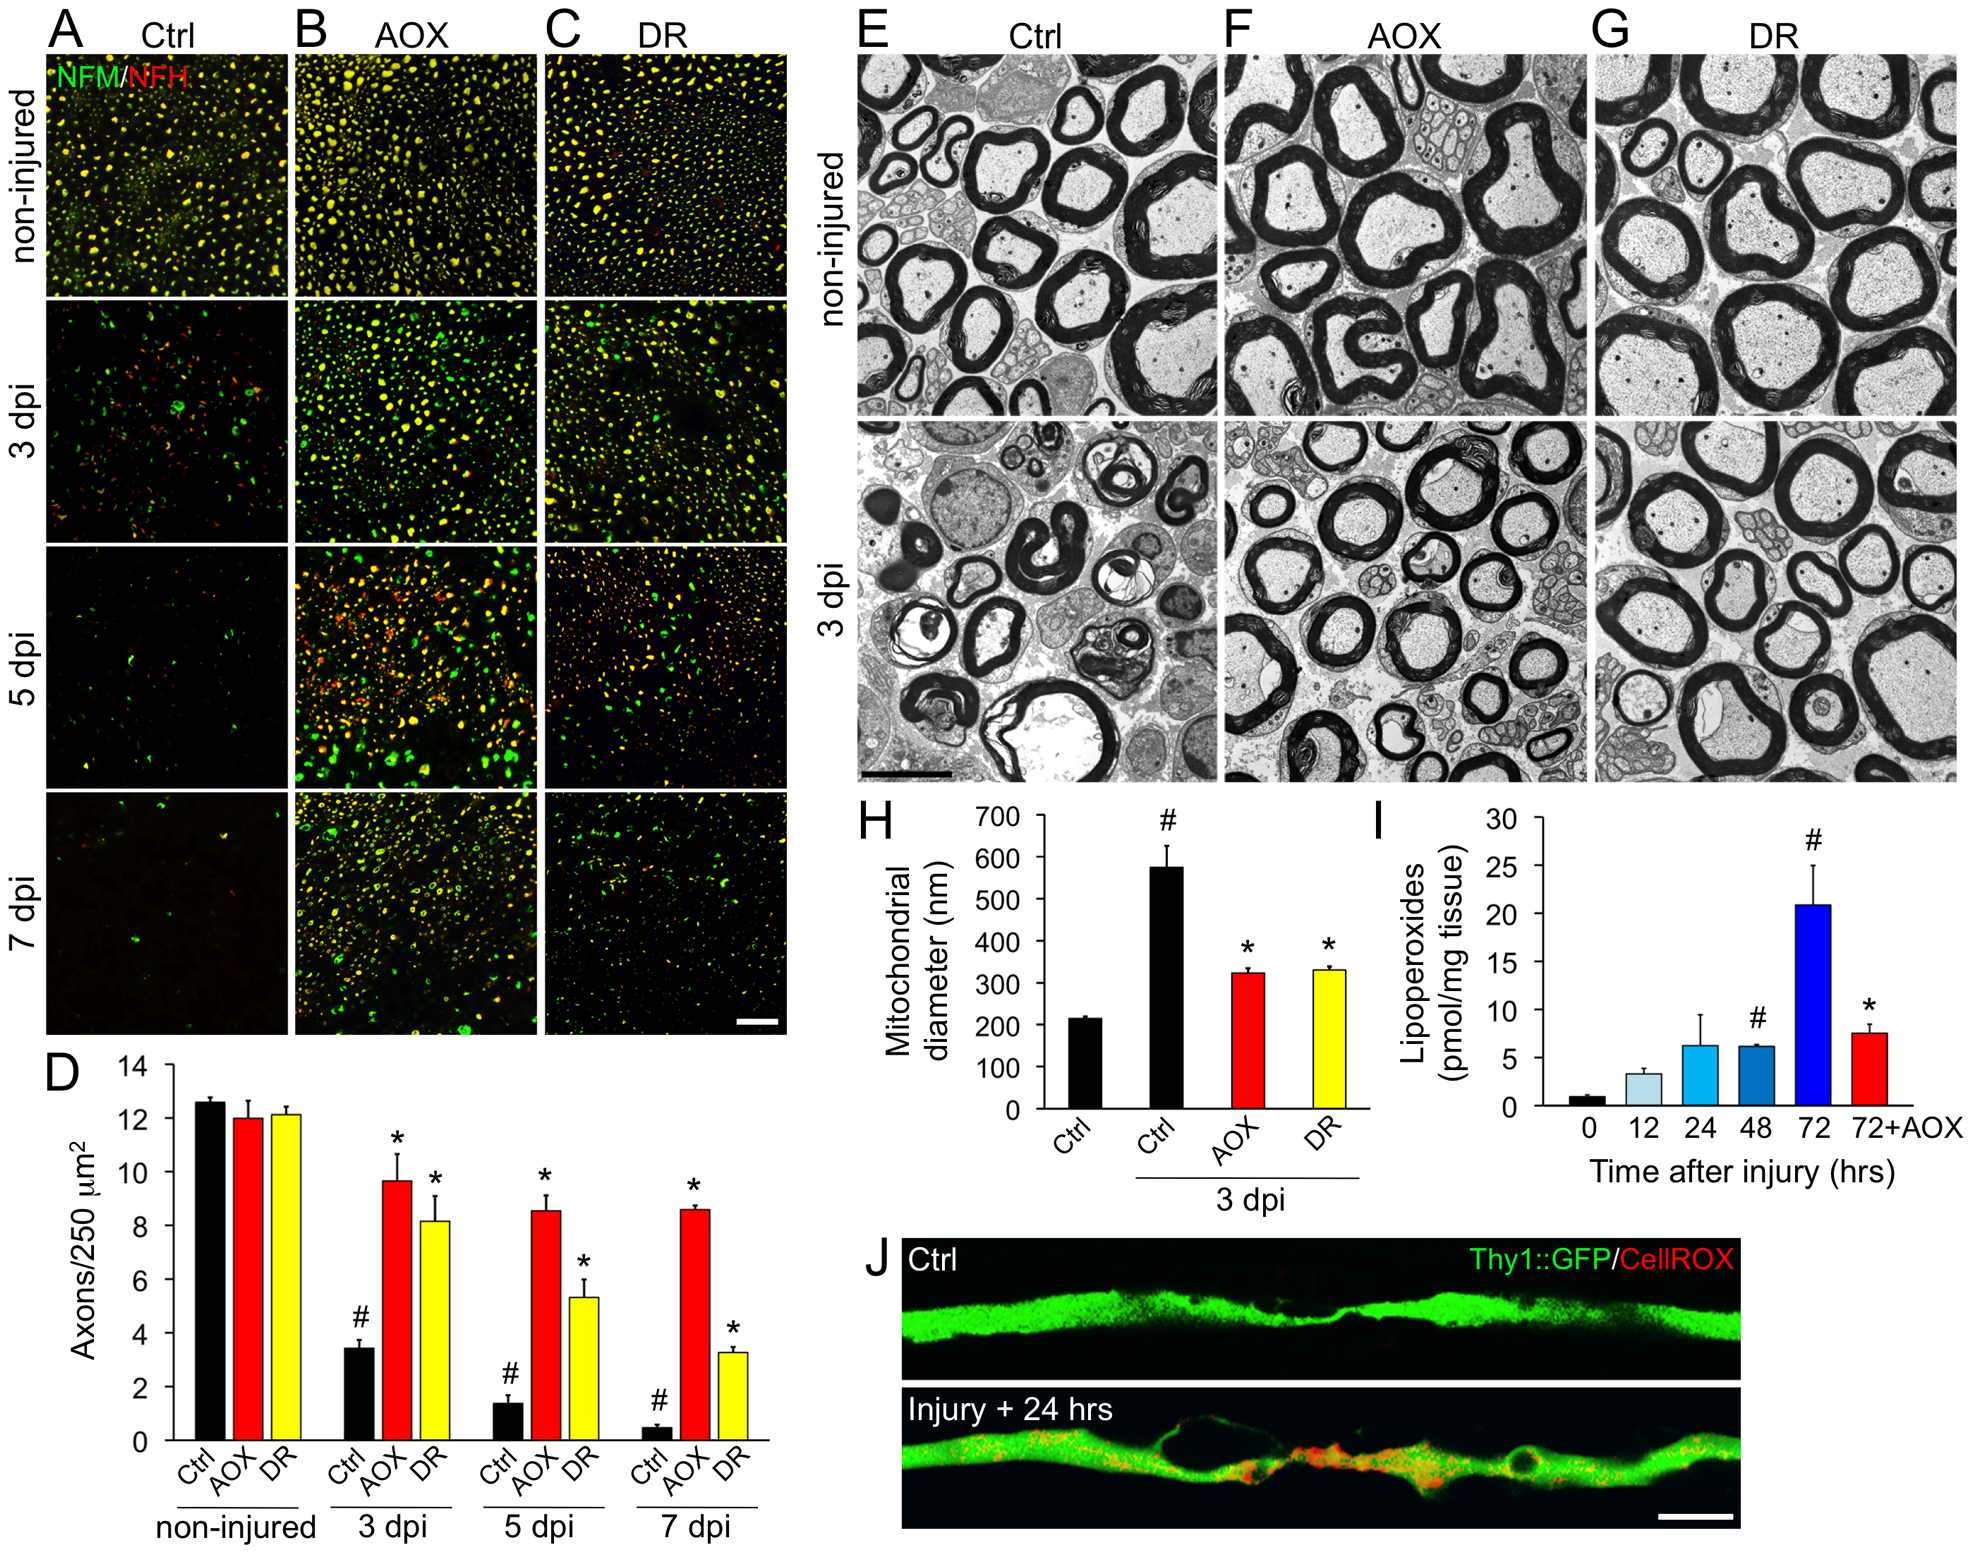 Systemic antioxidant treatment and intermittent fasting delay axonal degeneration in mice.